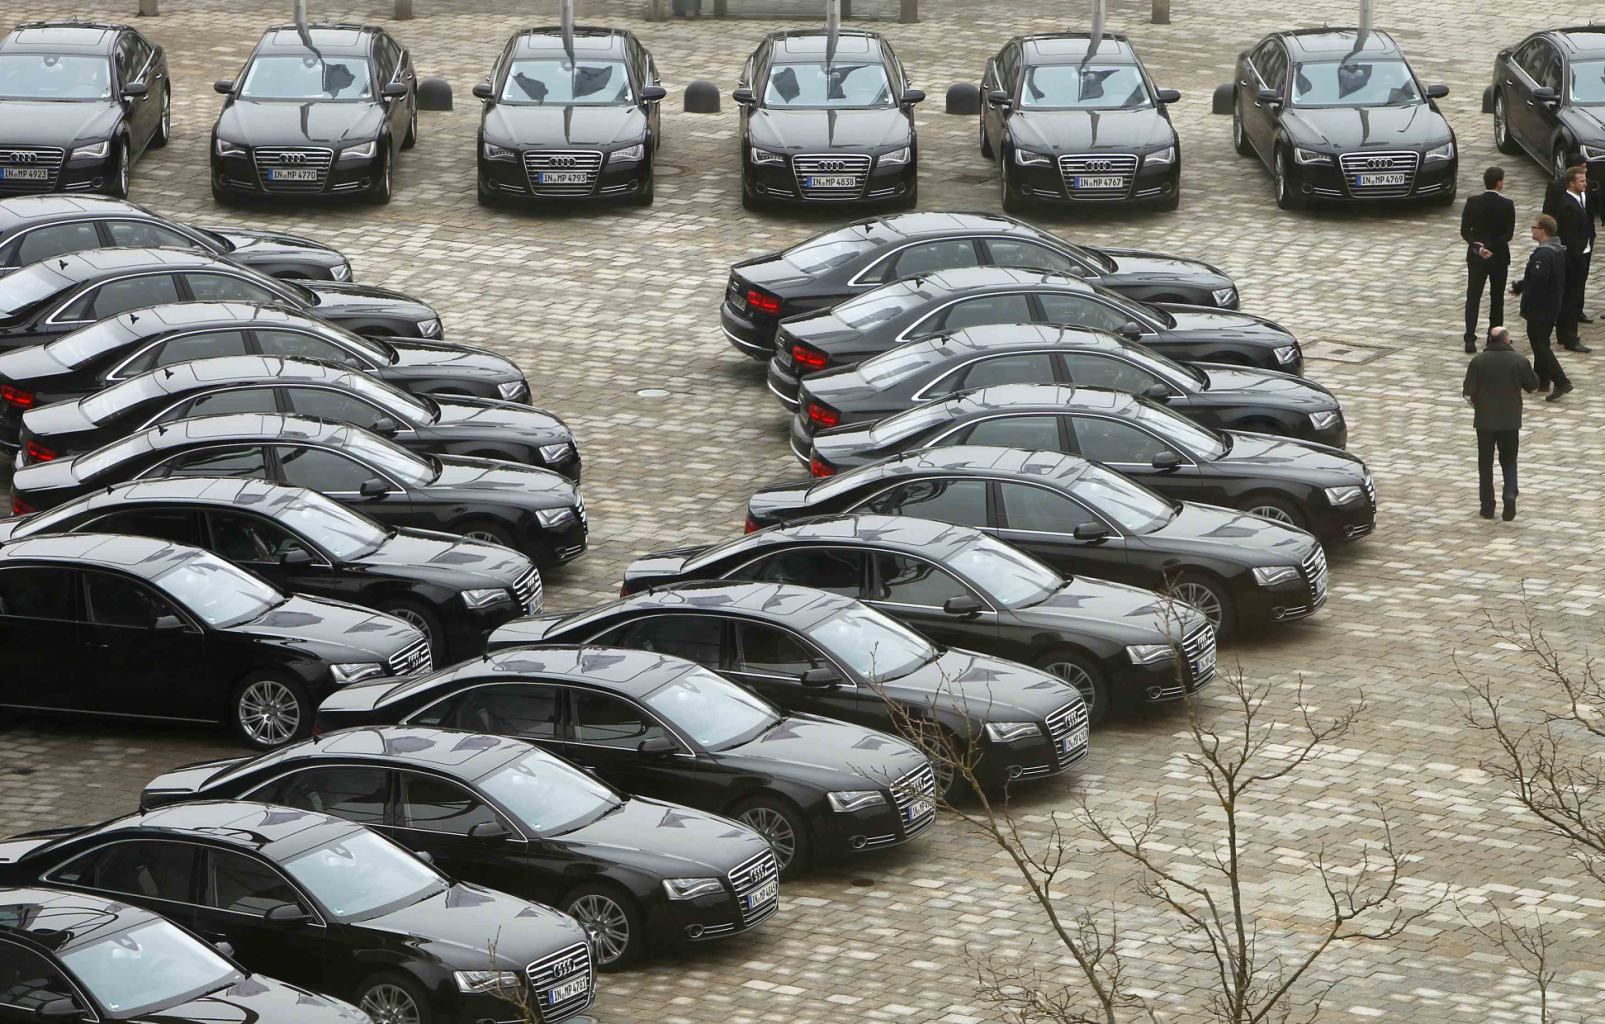 Audi A8's are parked in front of headquarter before Audi's annual news conference in Ingolstadt